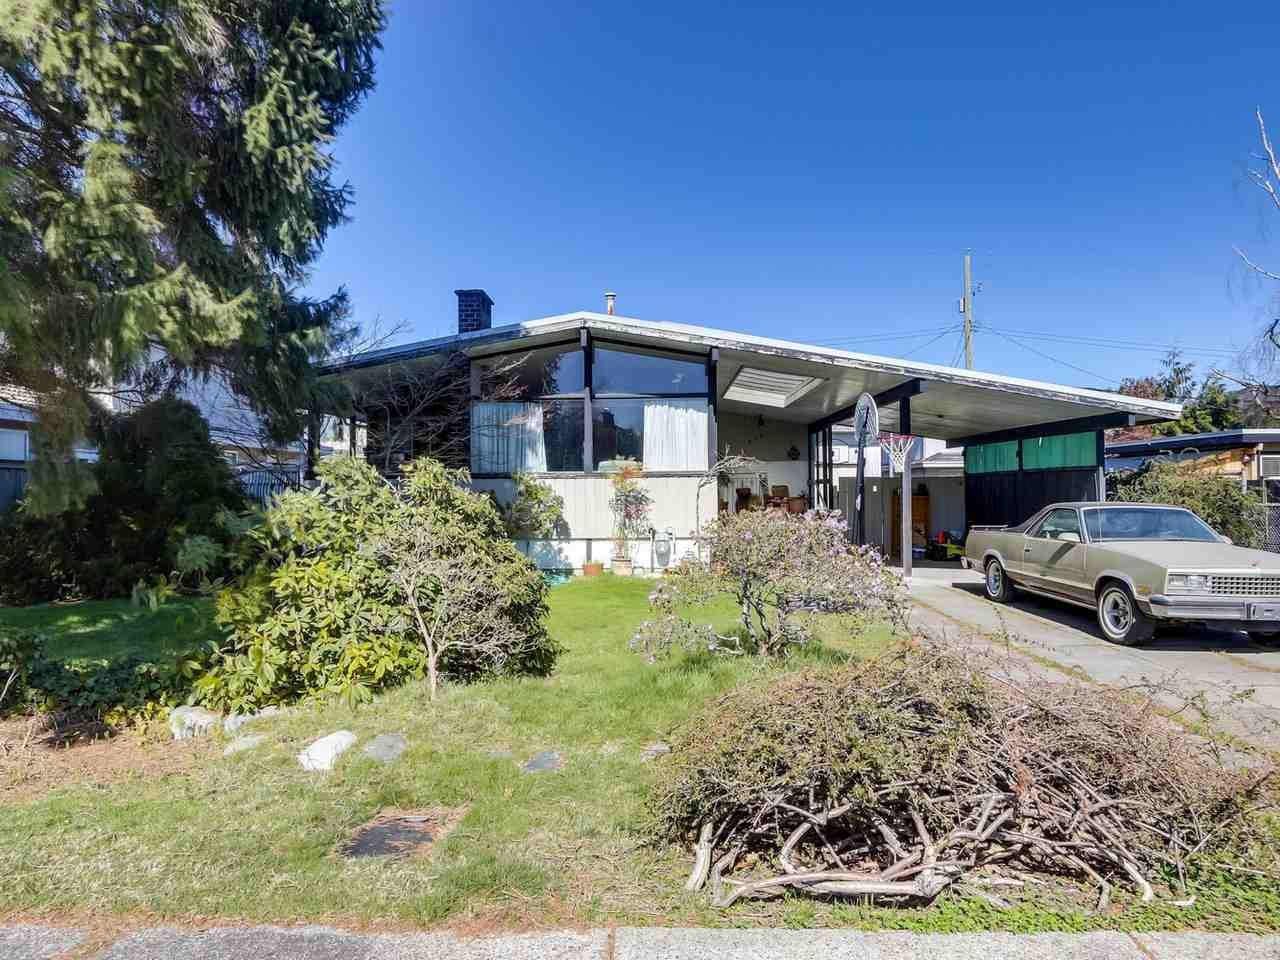 """Main Photo: 3391 WARDMORE Place in Richmond: Seafair House for sale in """"SEAFAIR"""" : MLS®# R2557606"""